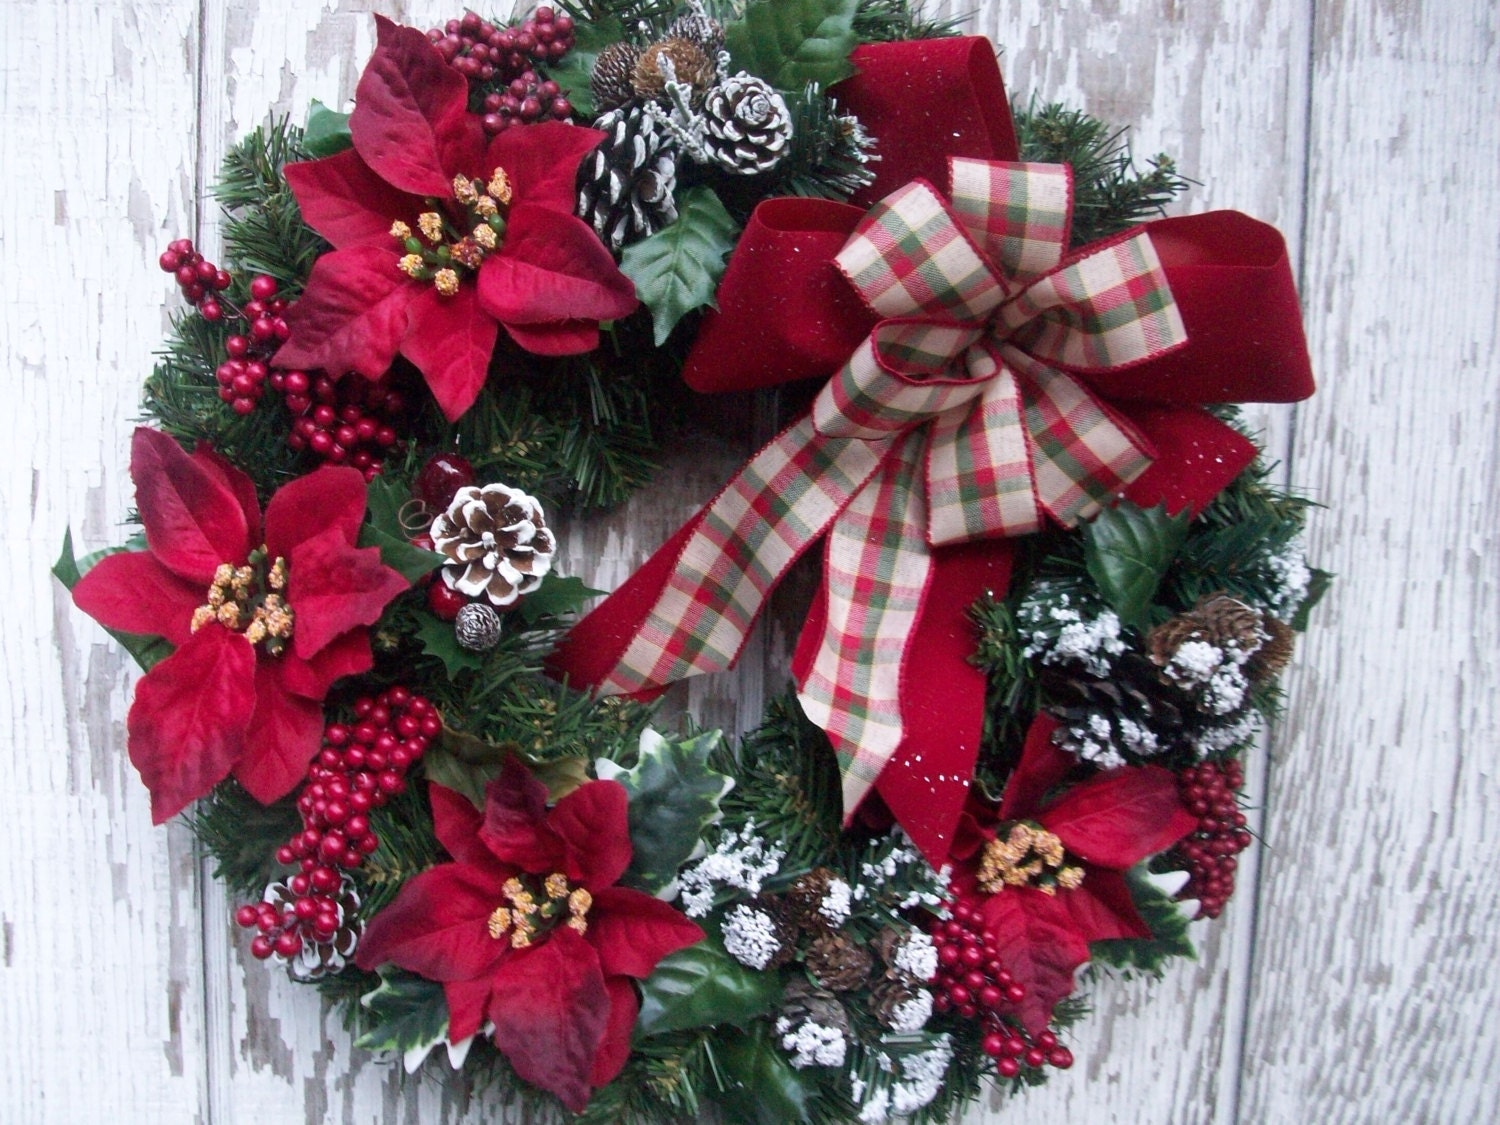 sale clearance christmas wreath small wreath by wreathehavoc. Black Bedroom Furniture Sets. Home Design Ideas